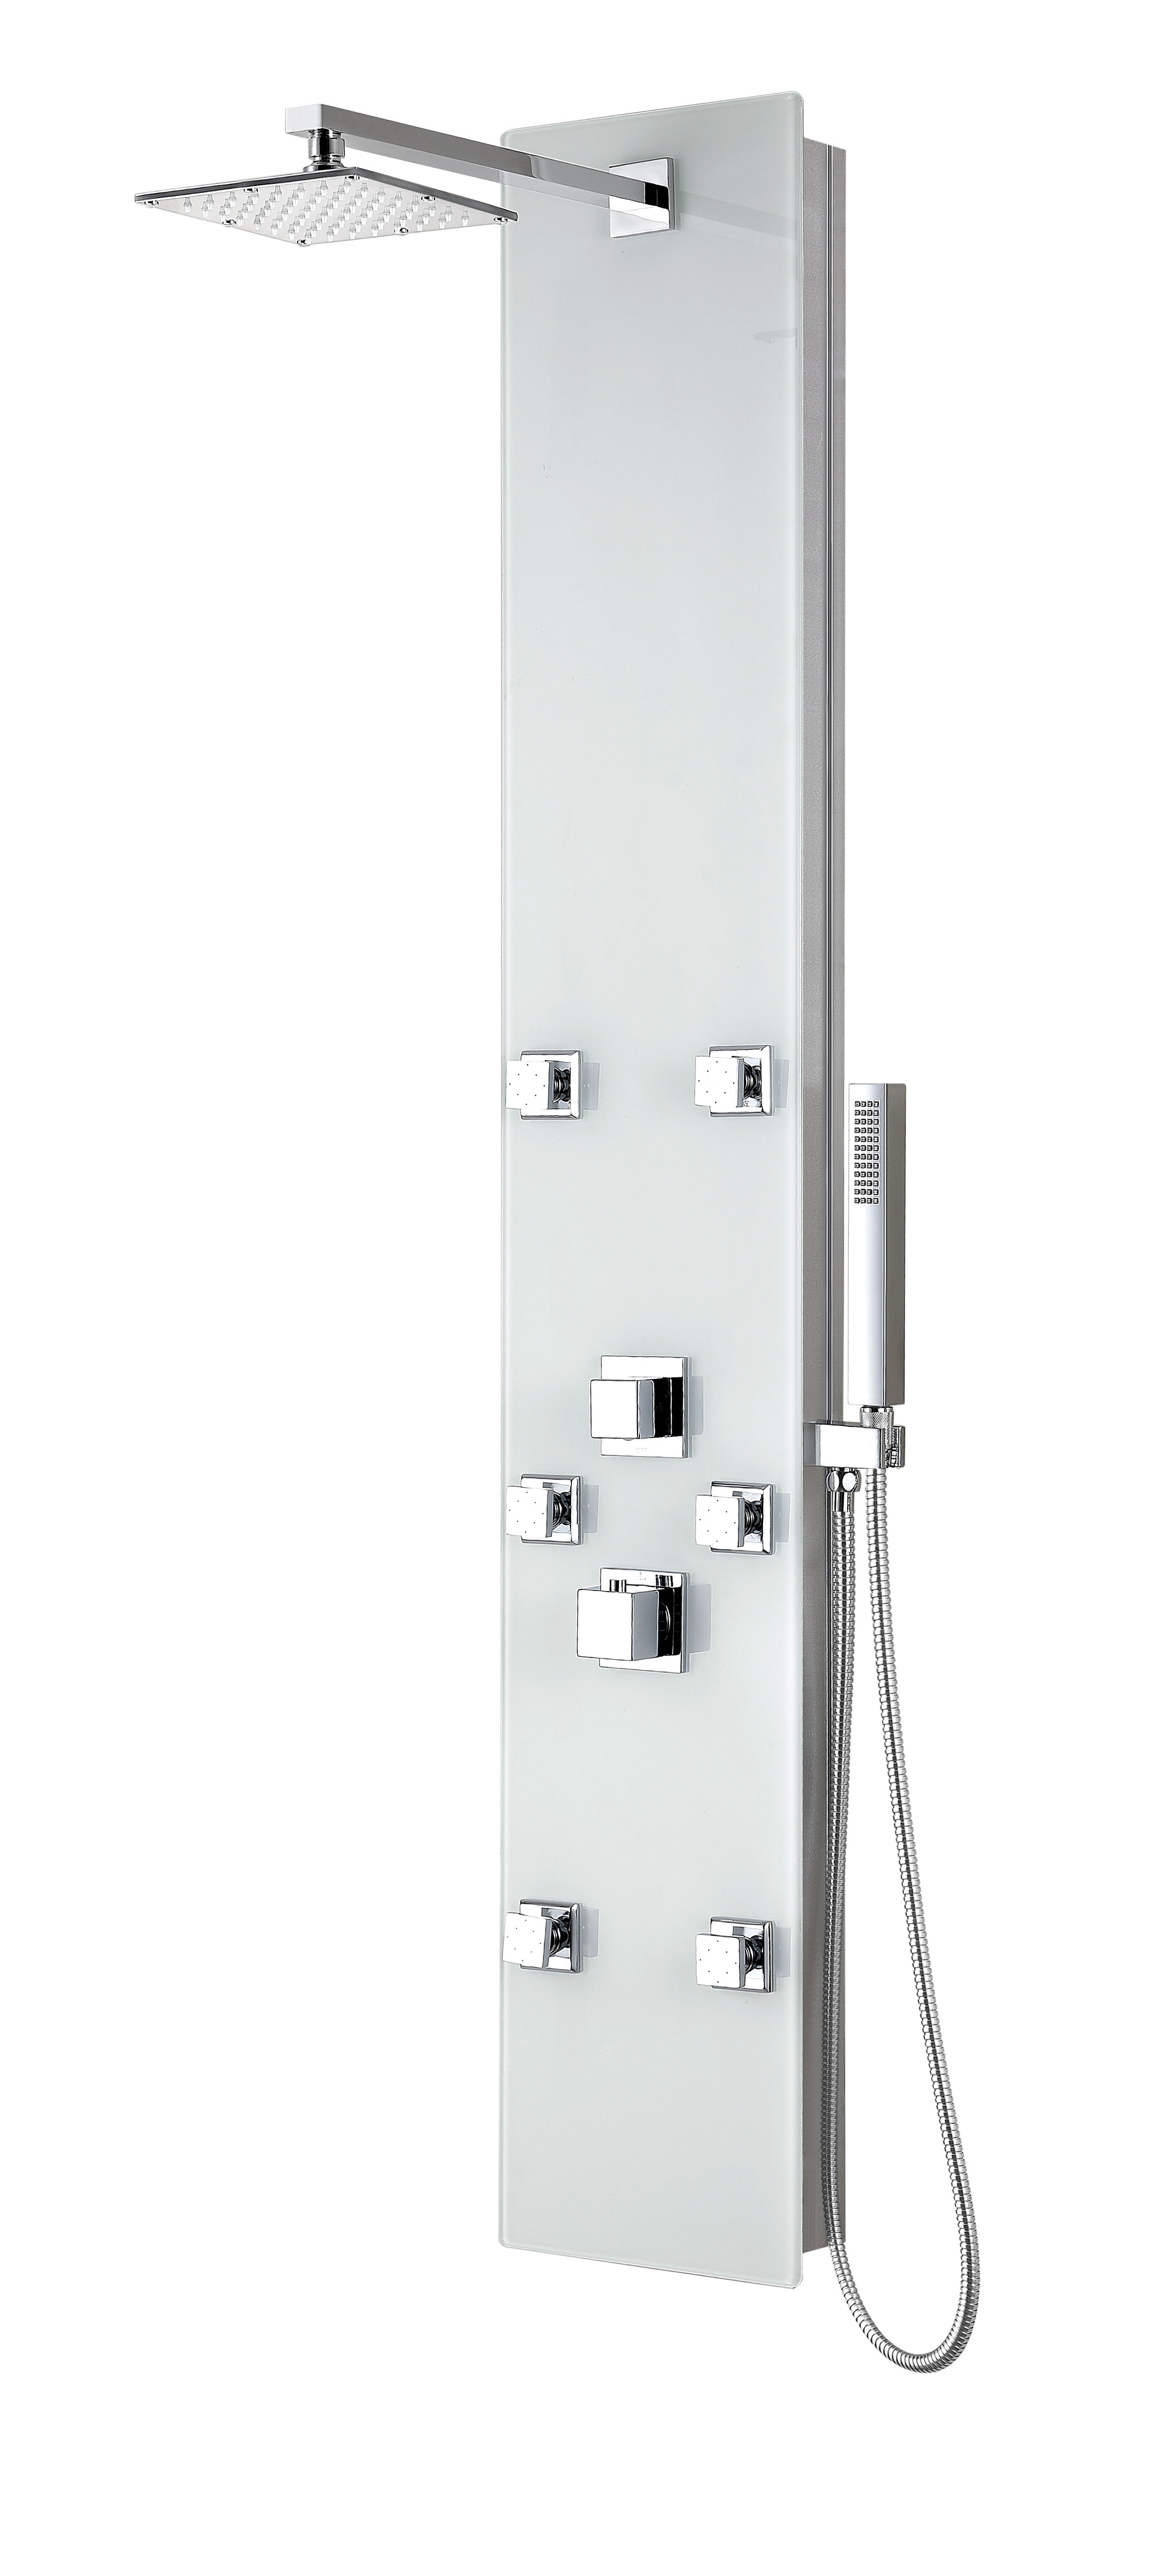 ANZZI SP-AZ029 Rhaus Wall Mount Shower Panel With Spray Wand In White